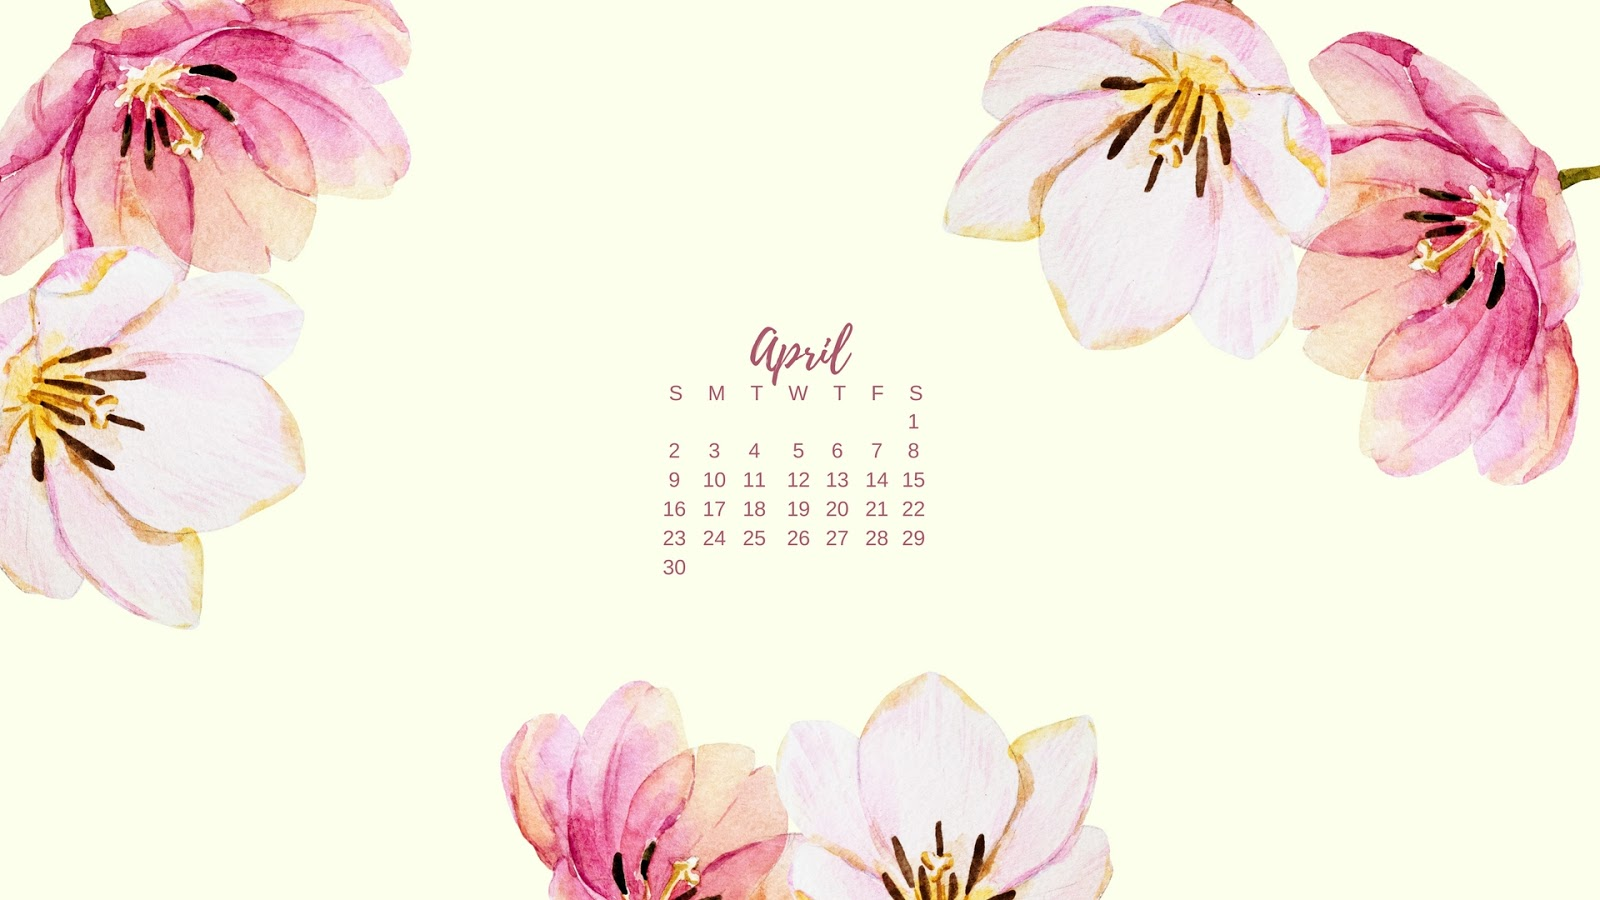 April 2017 Desktop Wallpaper Download The Joy Blog